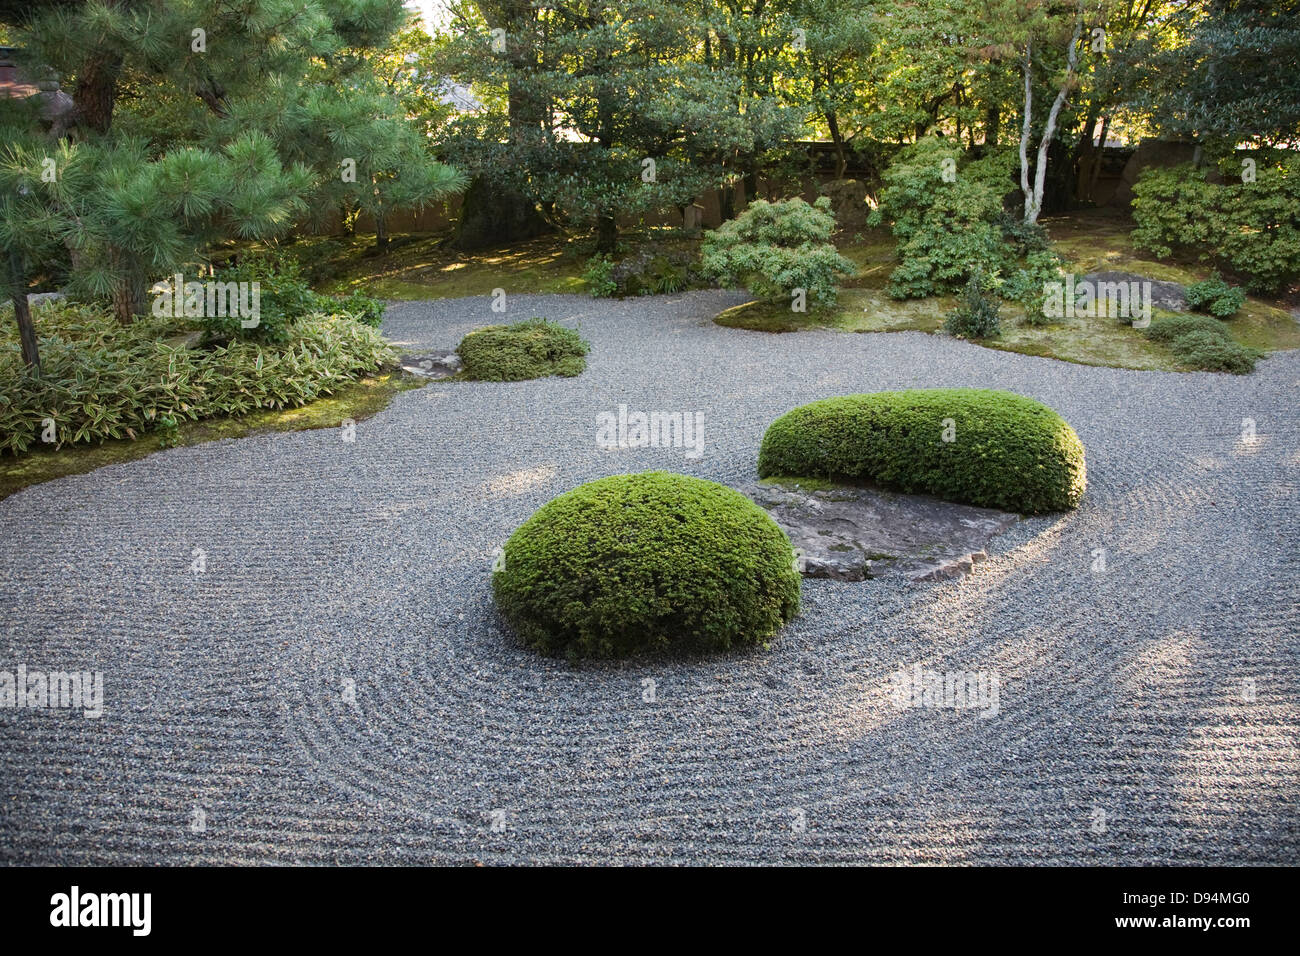 Rock Garden at Shunkoin, Miyoshinji Temple called Sazareishi-no-niwa - Stock Image